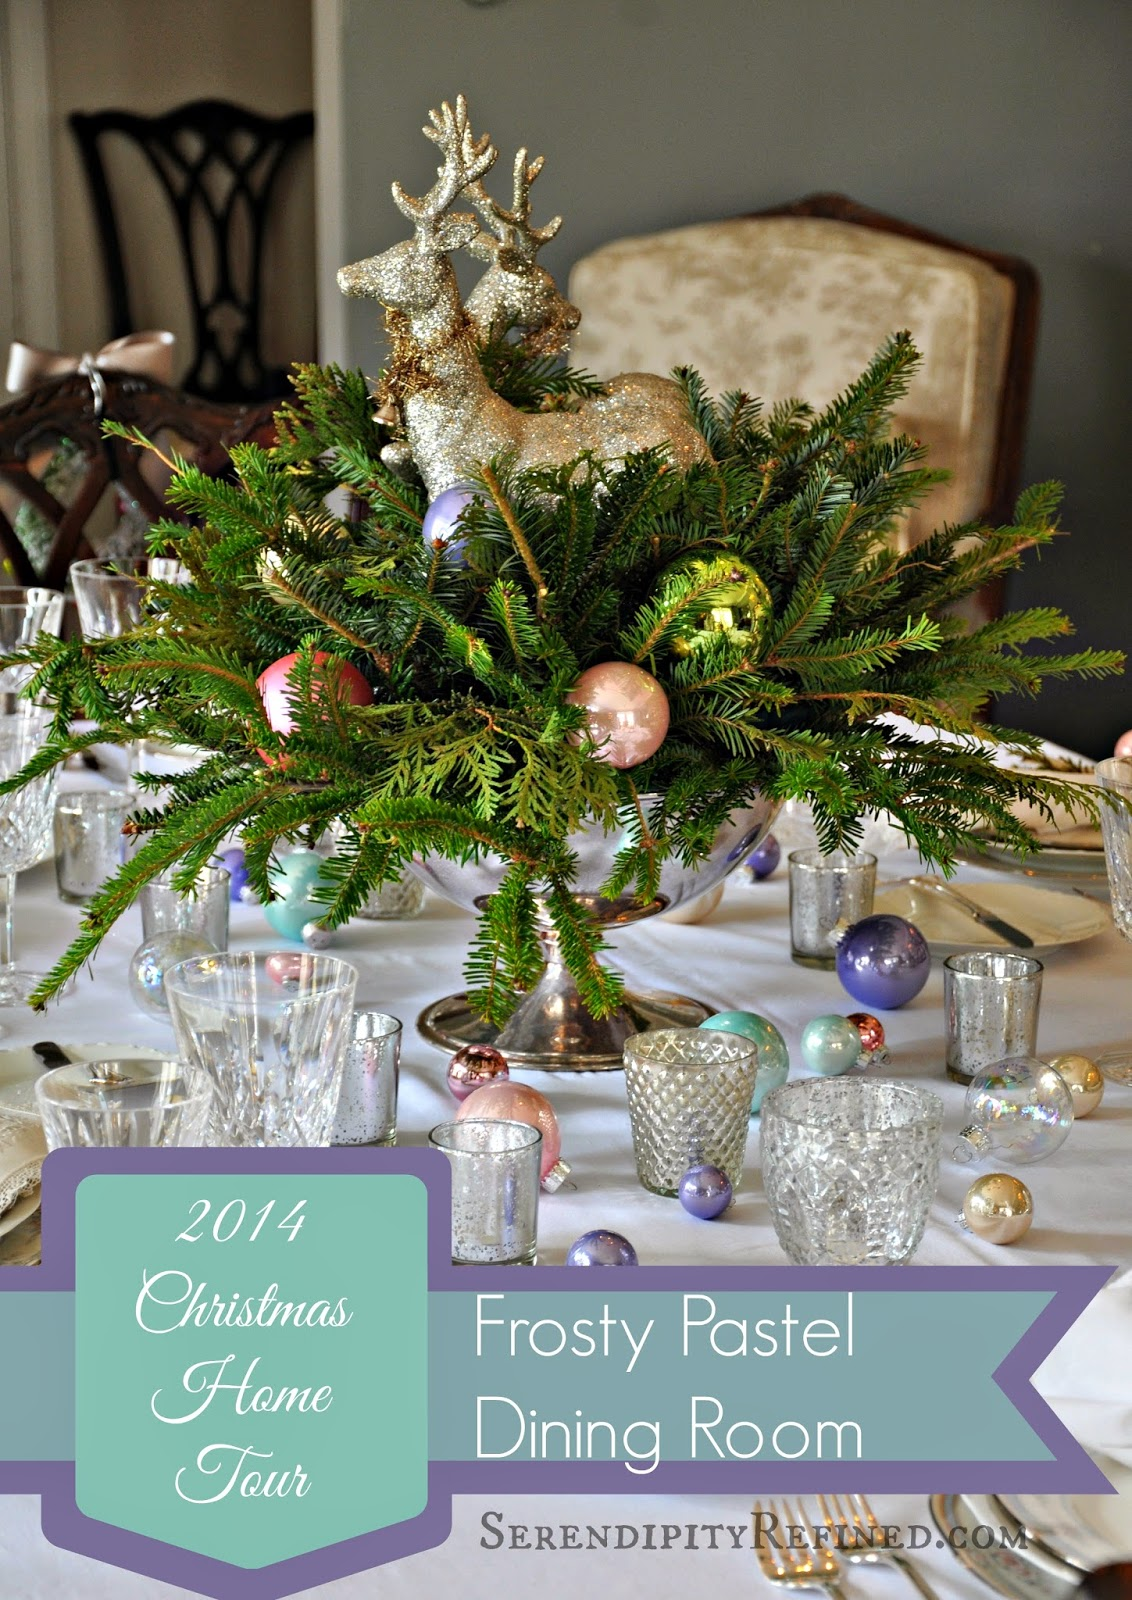 Frosty Pastel Dining Room Christmas Home Tour